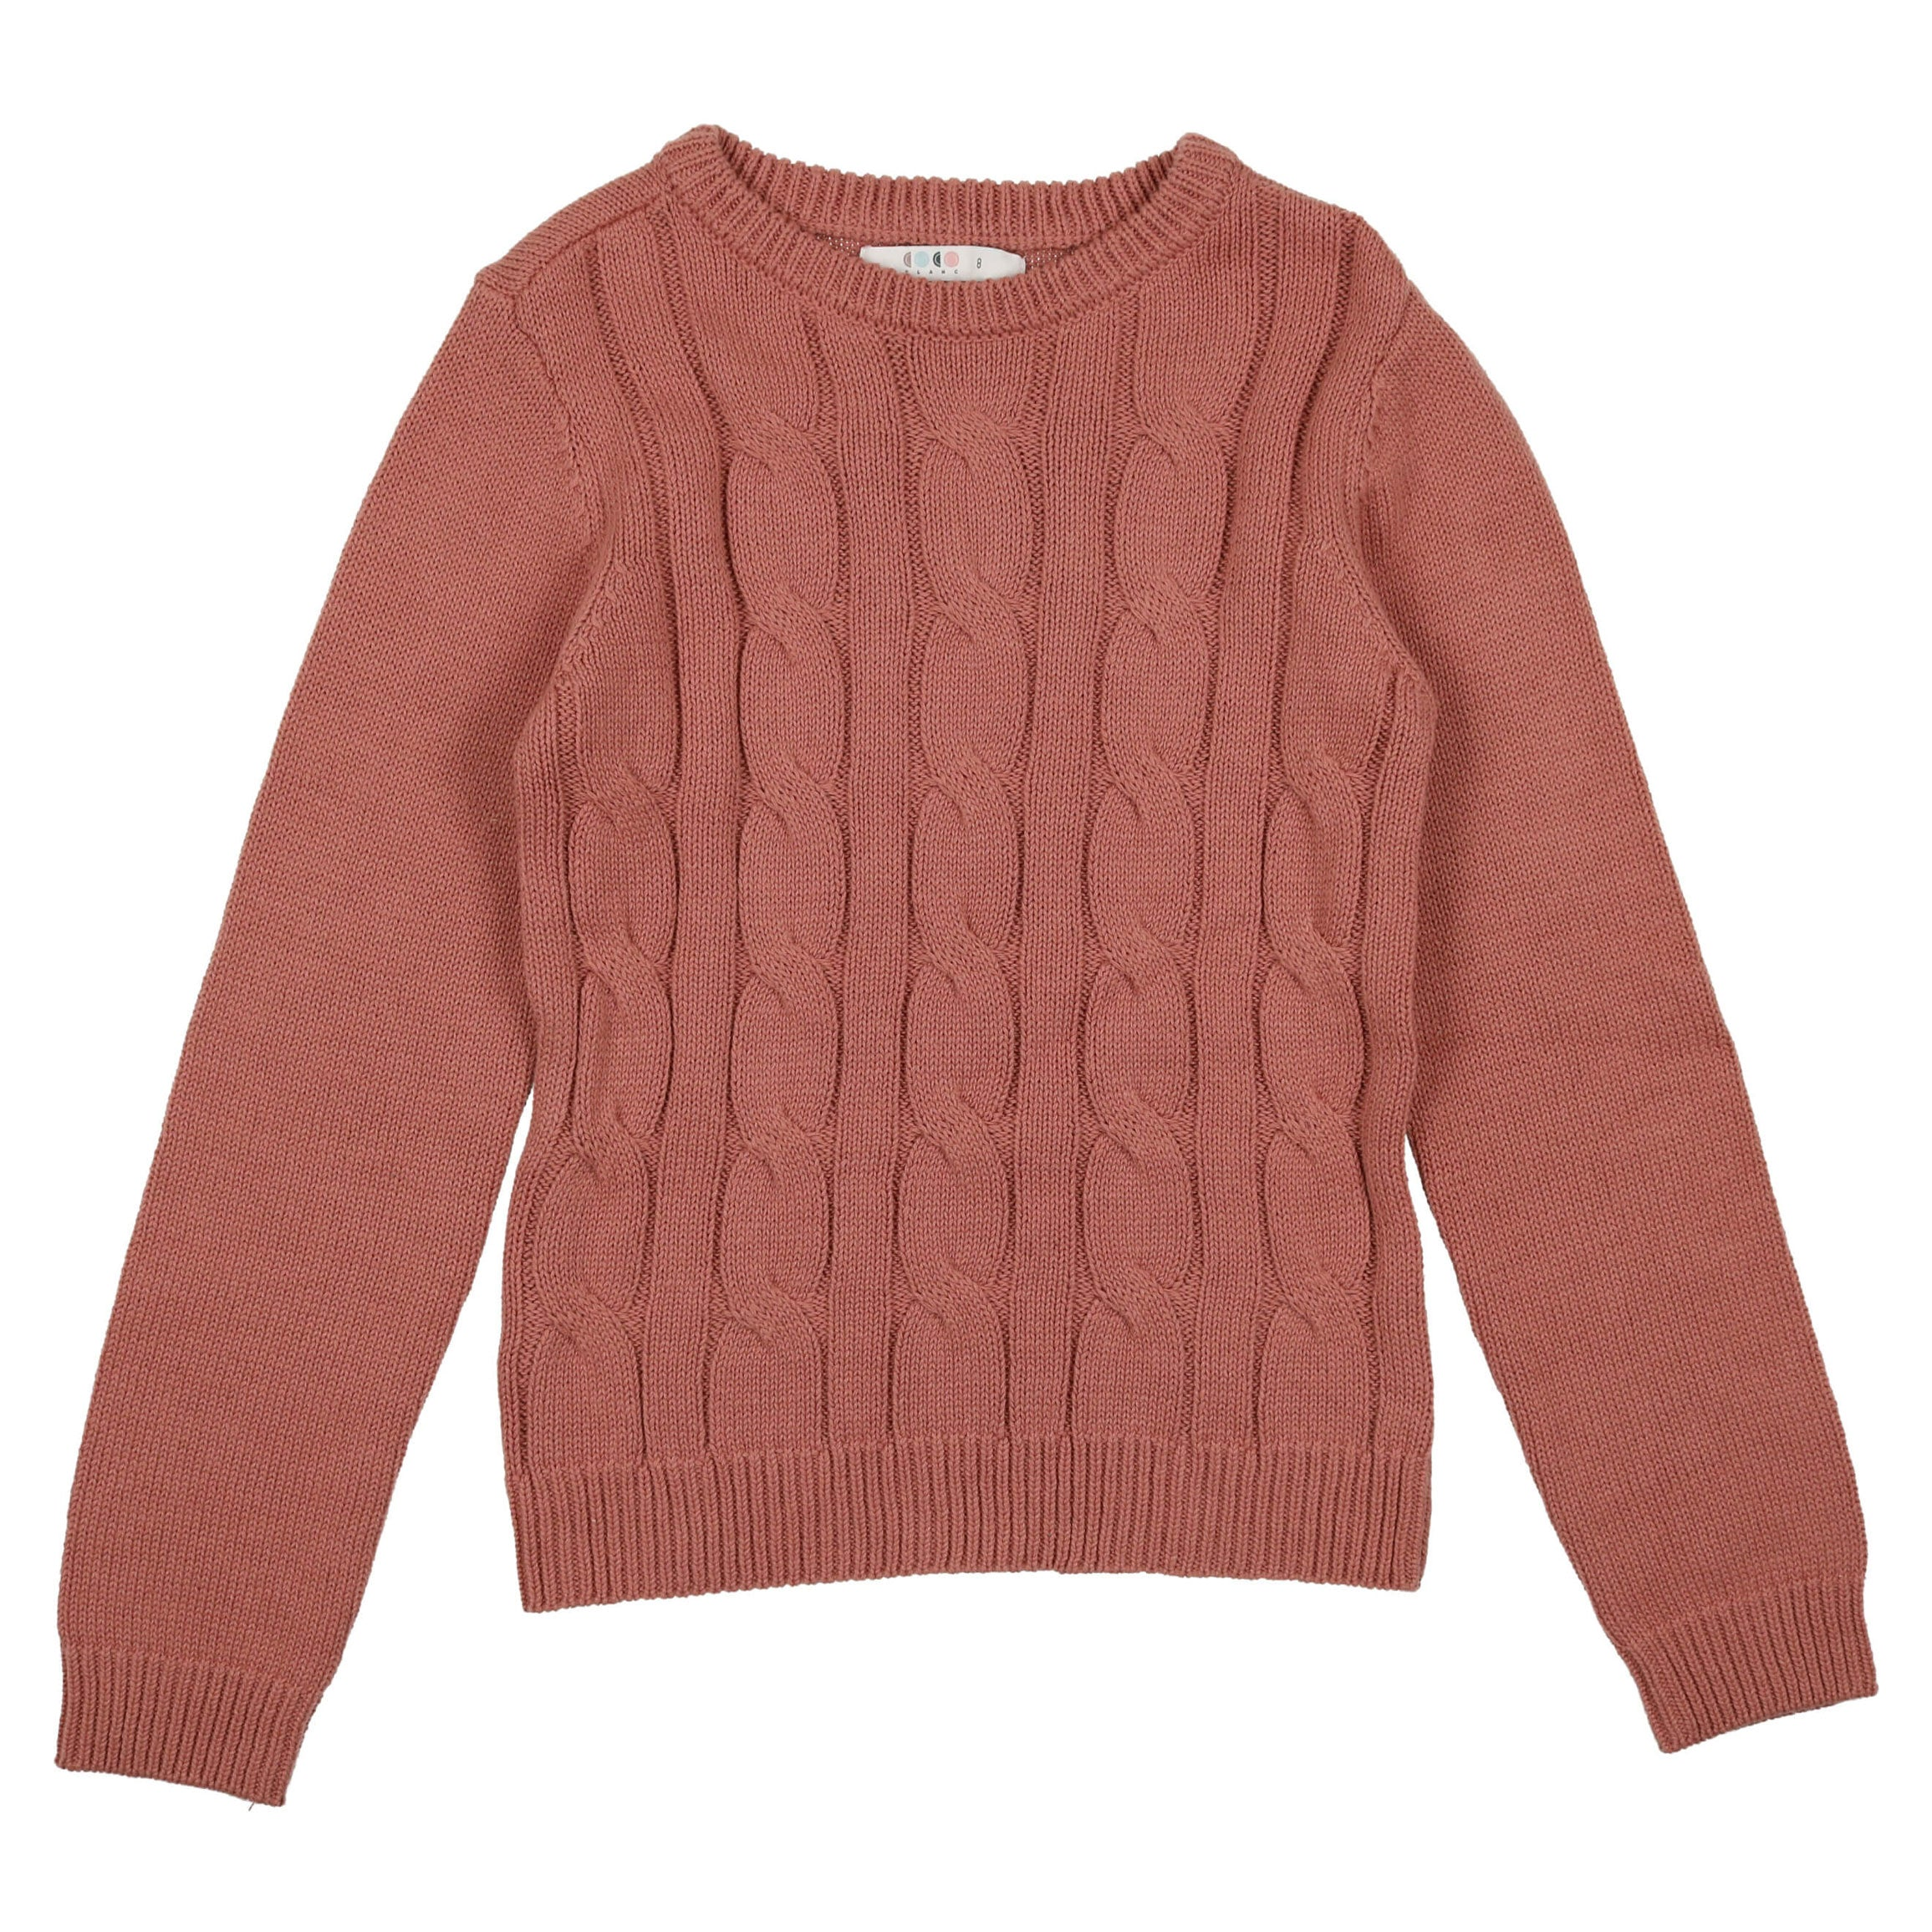 Coco Blanc Dusty Sand Cabled Sweater